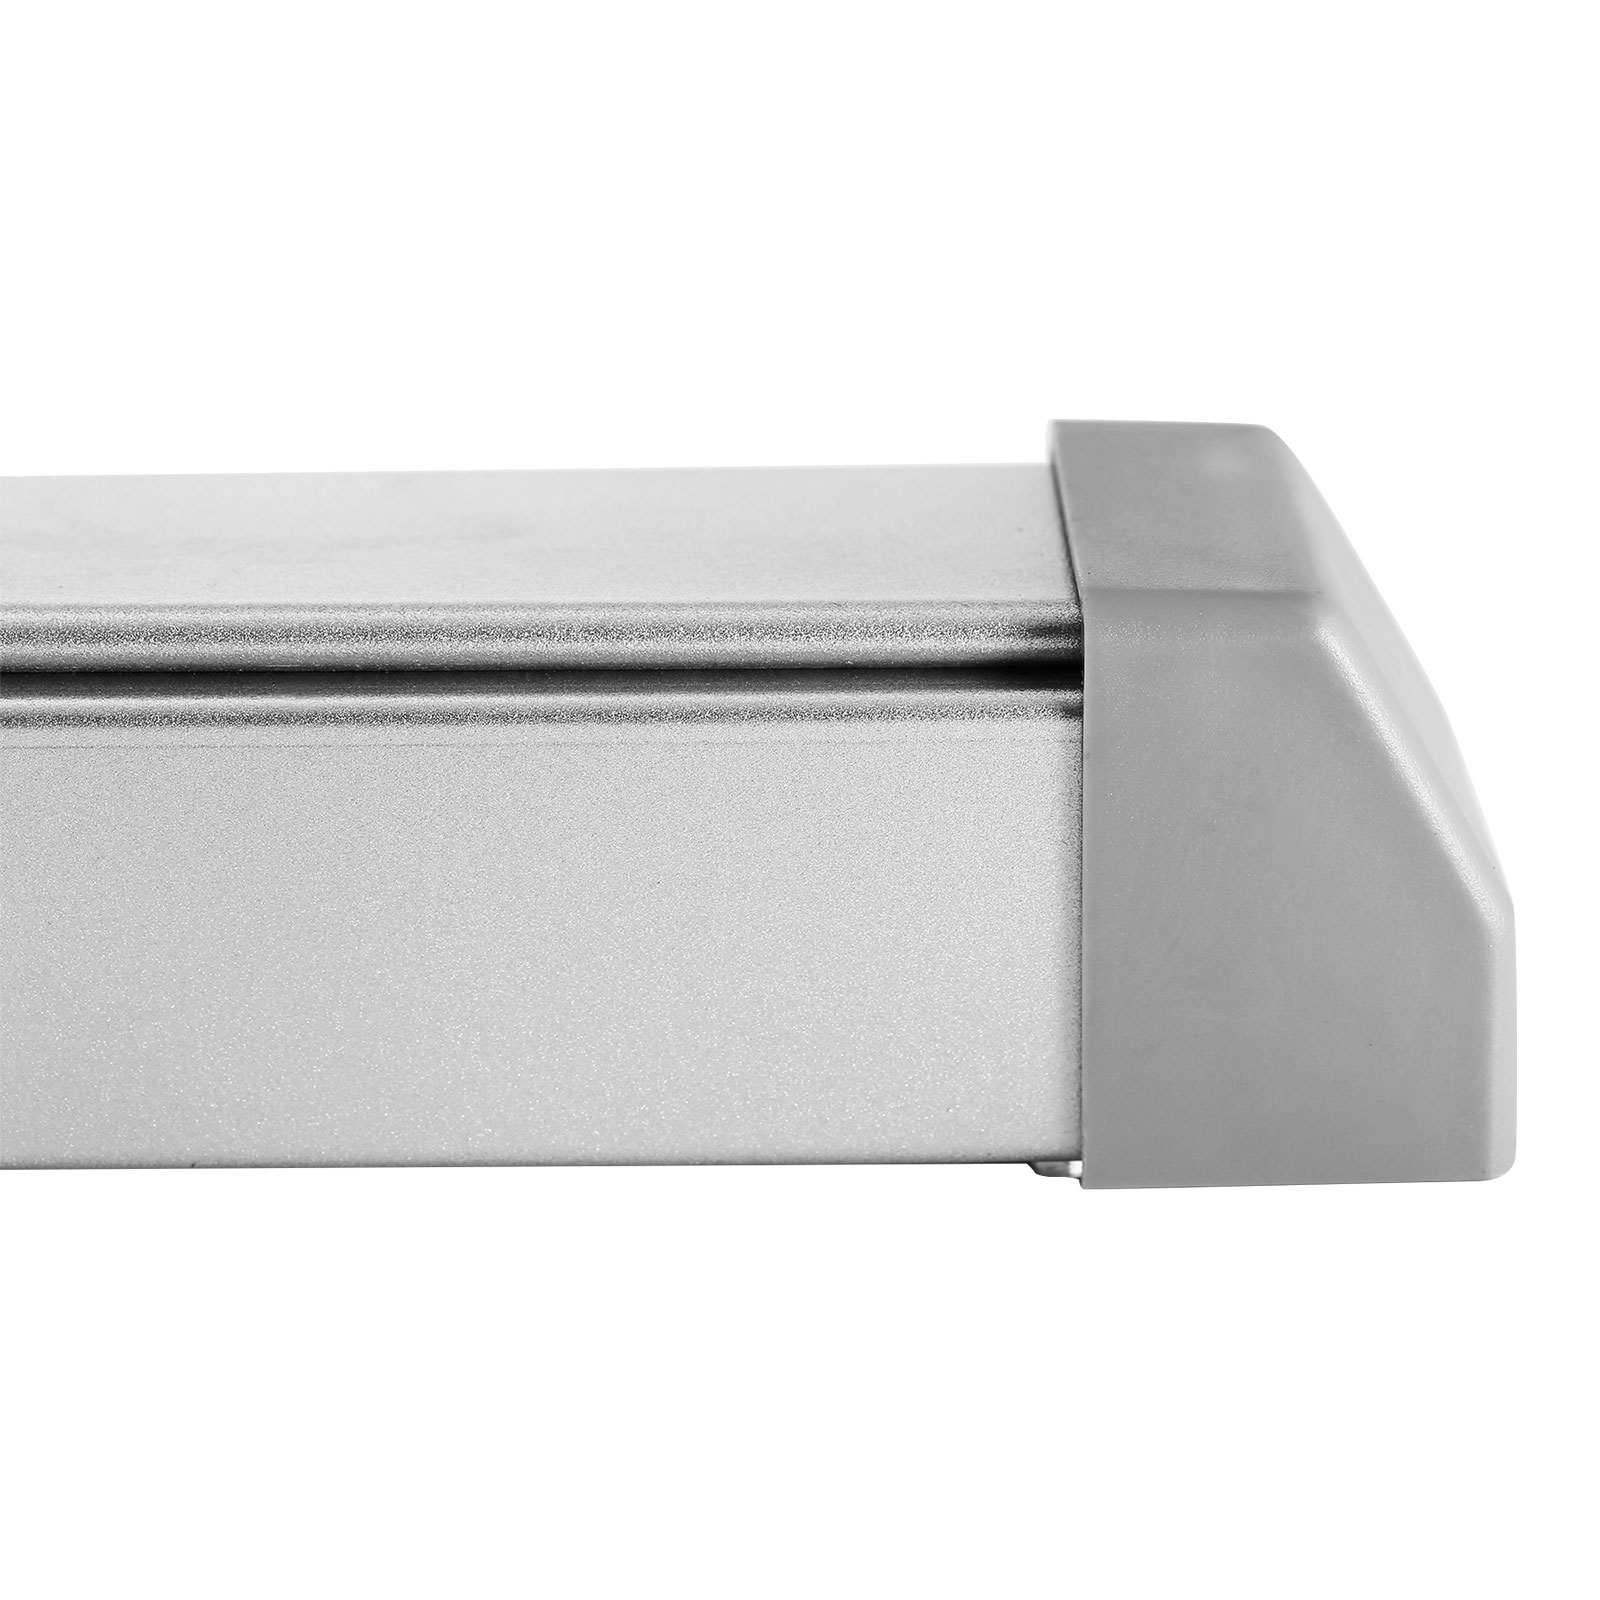 Door Push Bar With Handle Panic Exit Device Silver